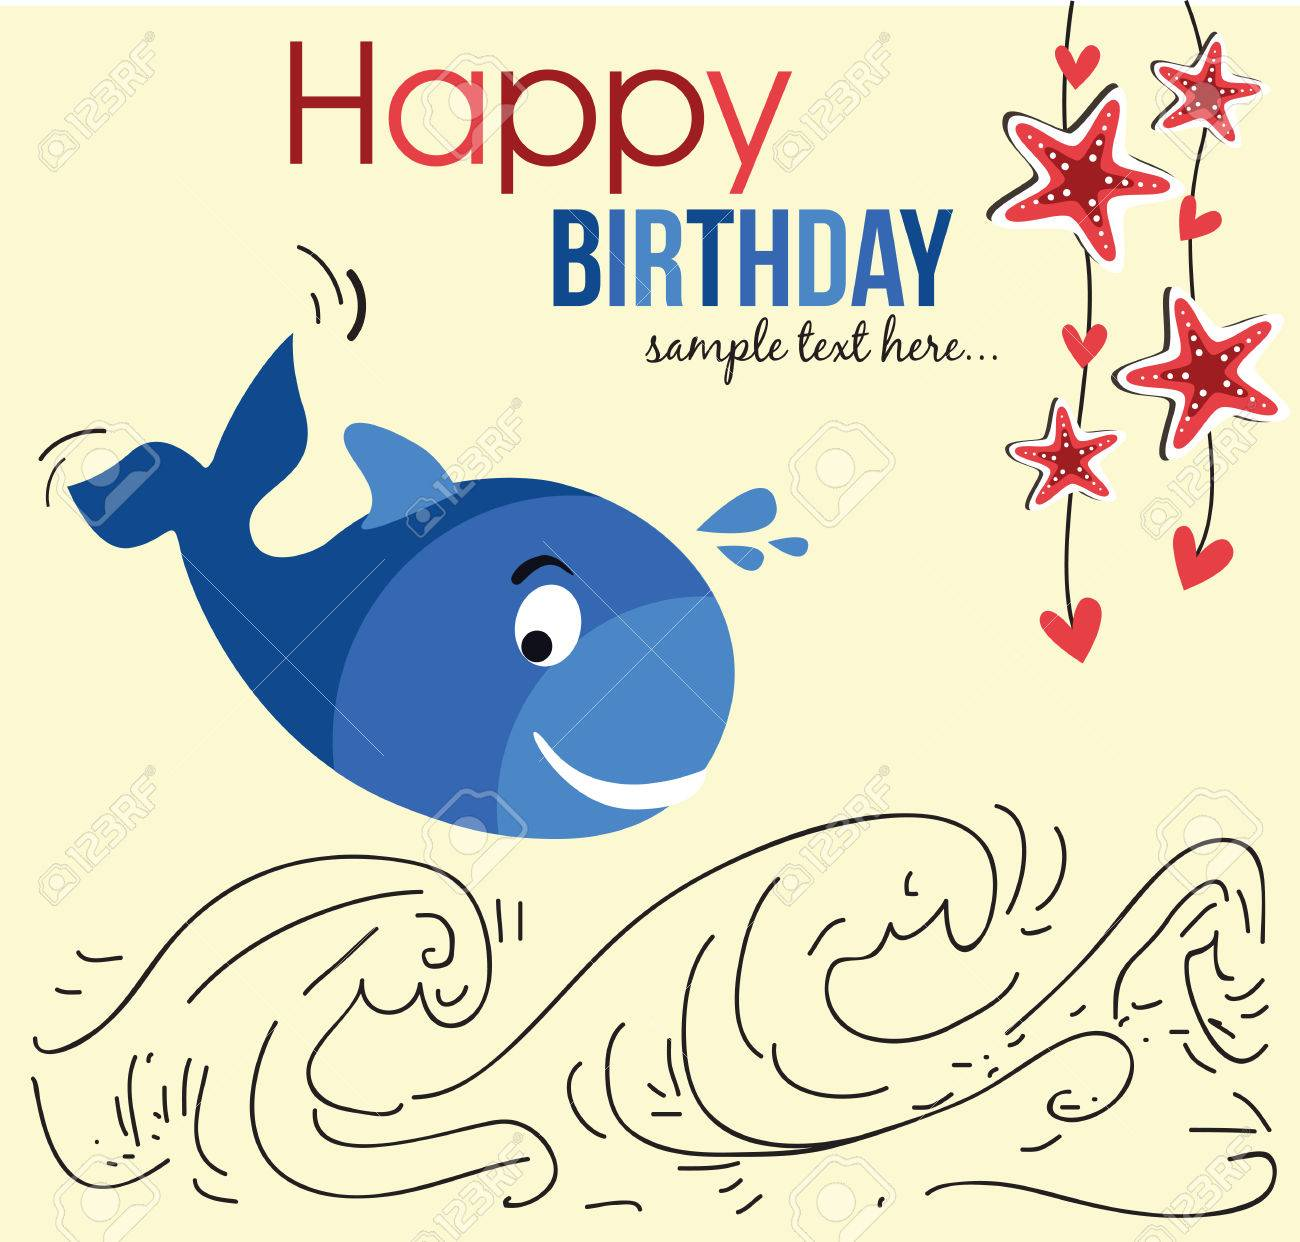 Cute Happy Birthday Card With Cute Whale Photo Picture And – Cool Happy Birthday Card